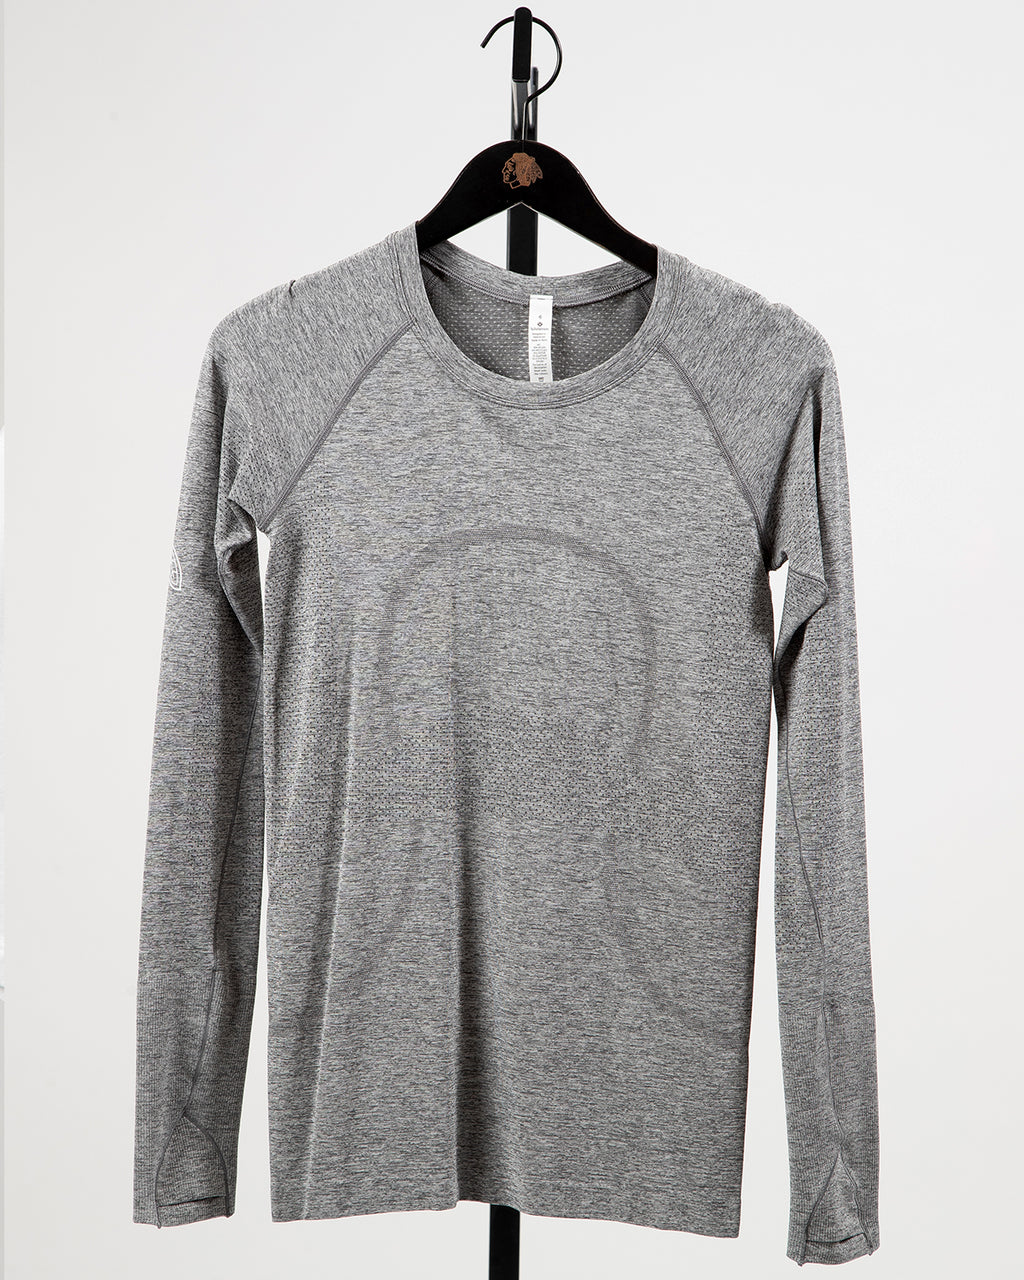 Ladies lululemon Gray Four Feather Swiftly Tech Long Sleeve